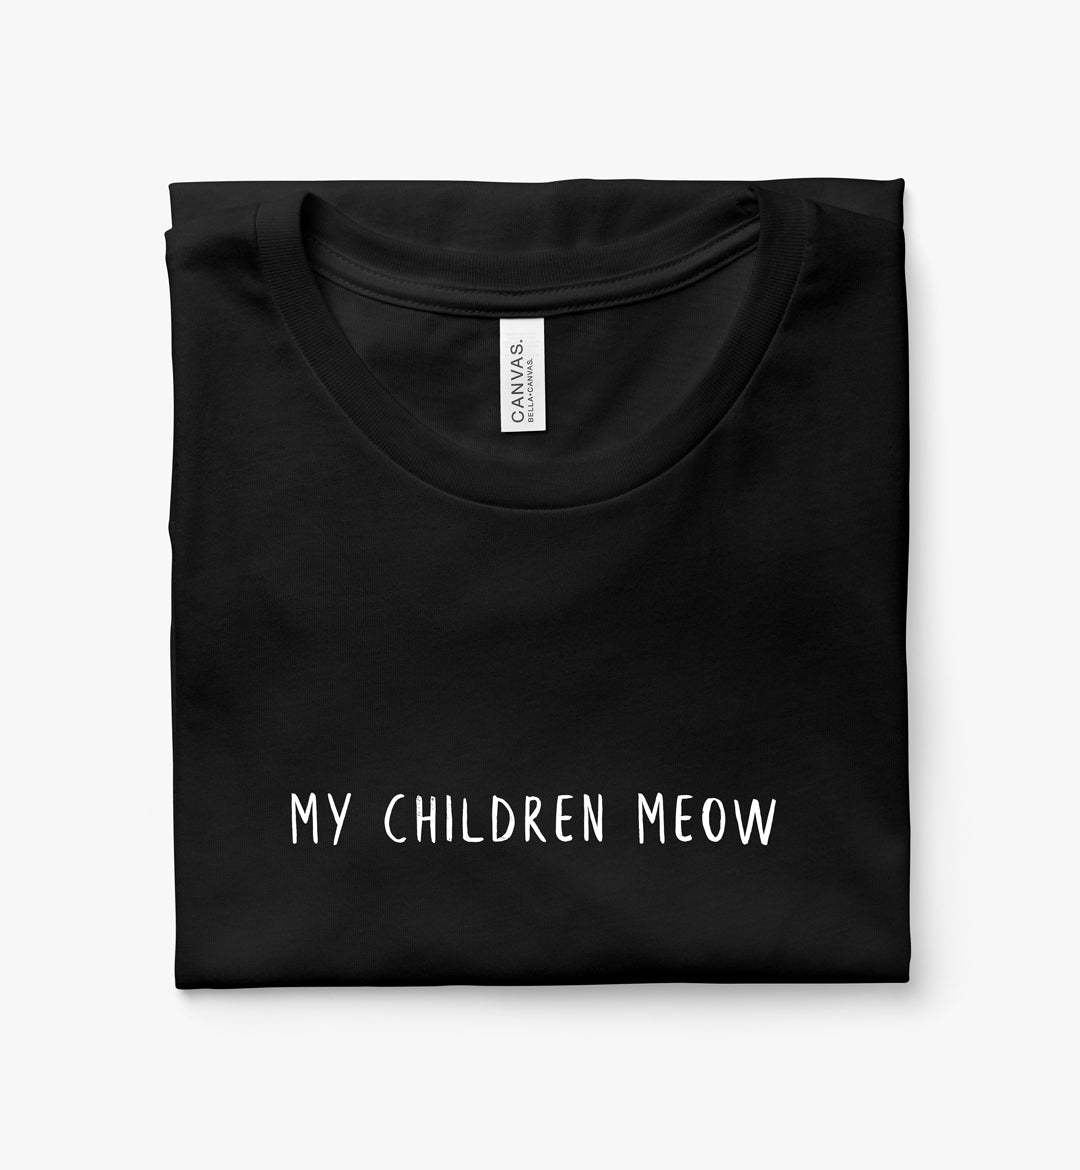 My Children Meow